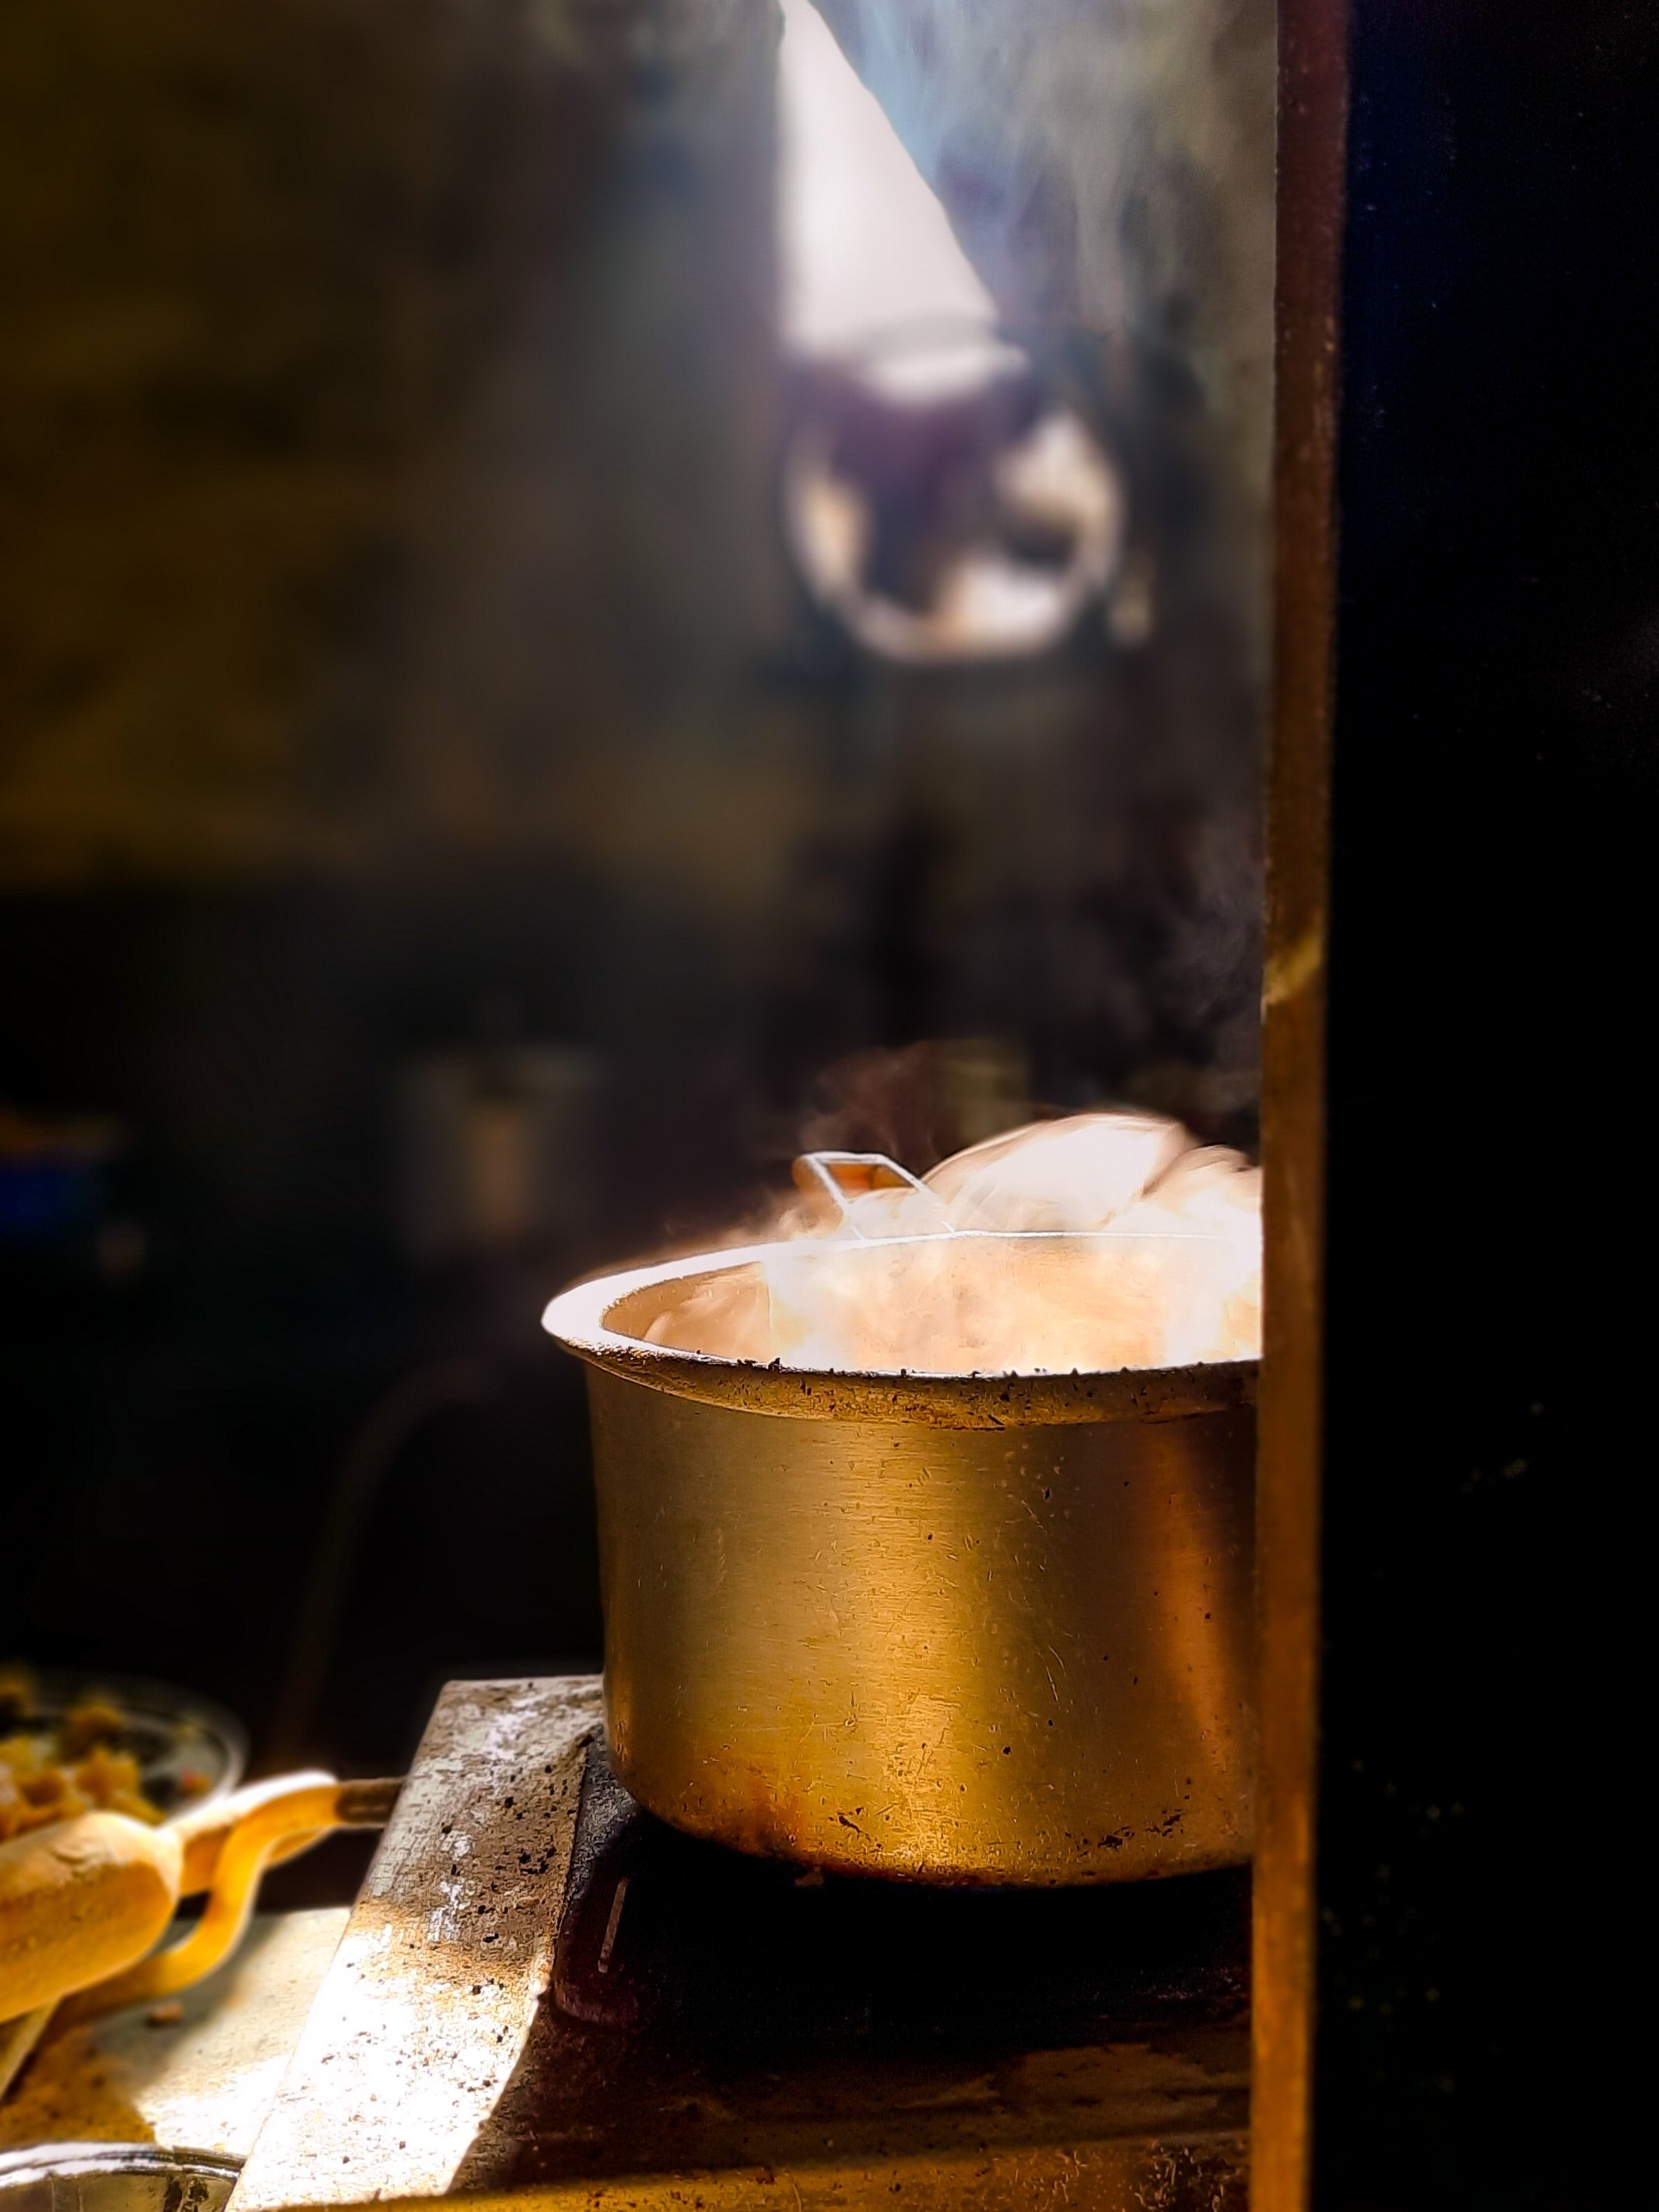 Pictured - A copper pot placed on an old fashioned cooker | Source: Pexels